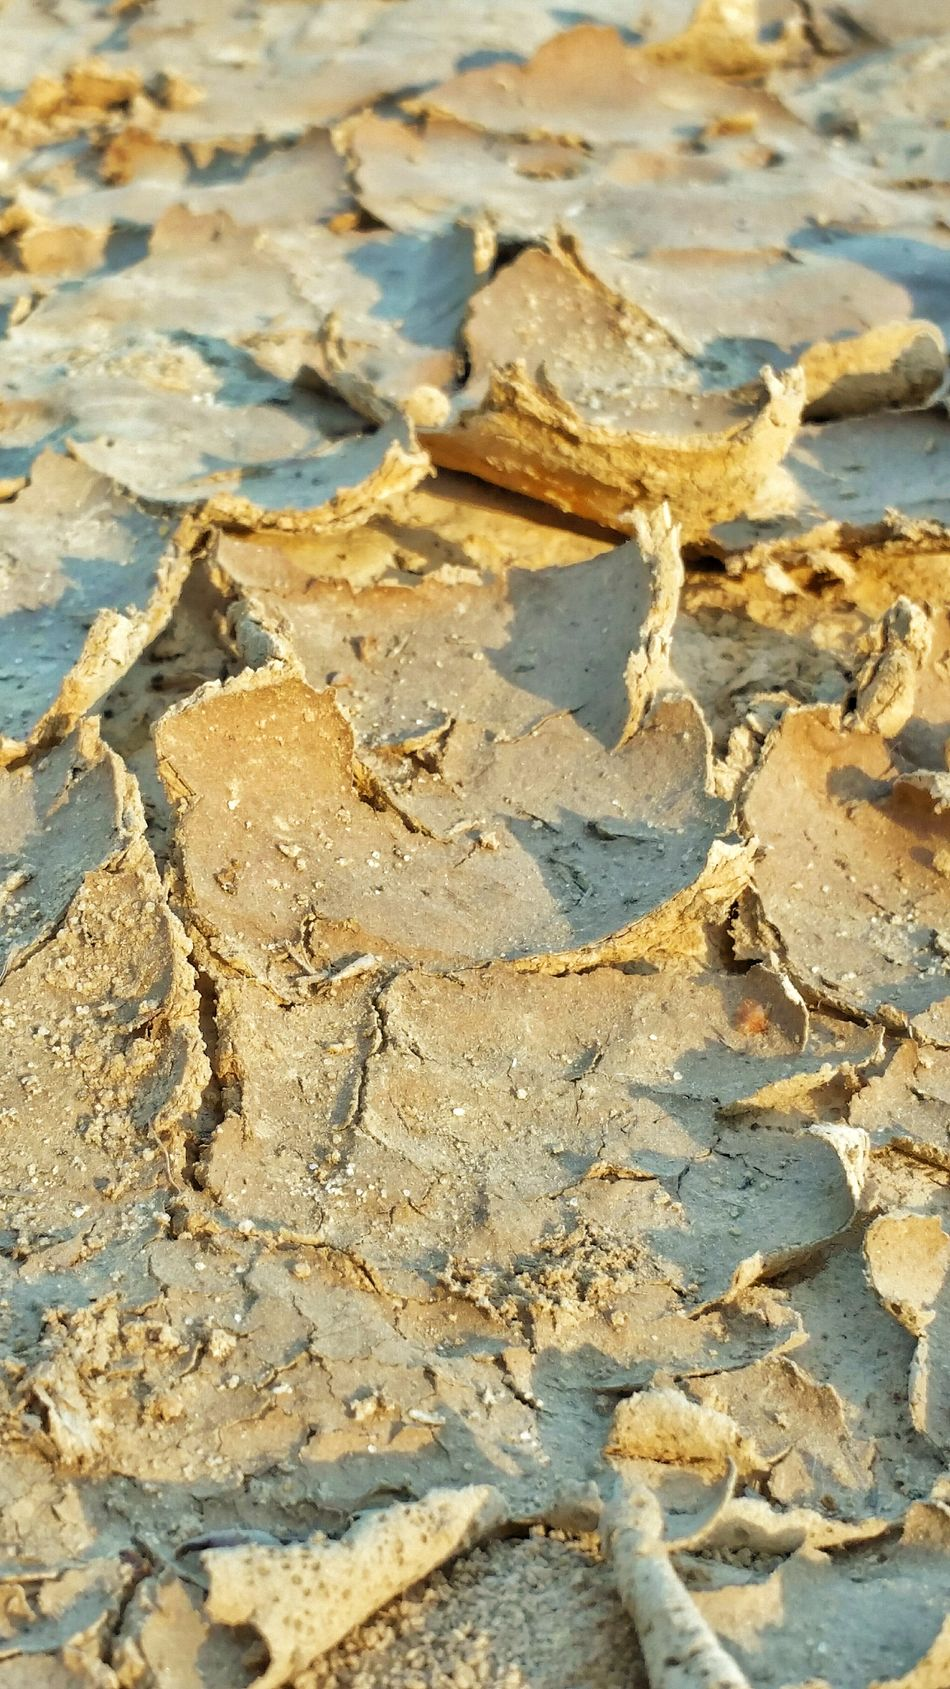 Full Frame Outdoors Nature Backgrounds Close-up Dirt Mud Cracks Cracks In The Earth Curled Up Dried Mud Shapes And Forms Bent Pattern Patterns In Nature Earth Dried Dried Up Shapes And Design Earth Tones Lights And Shadows Definition Lines And Shapes Textures Textured Surface